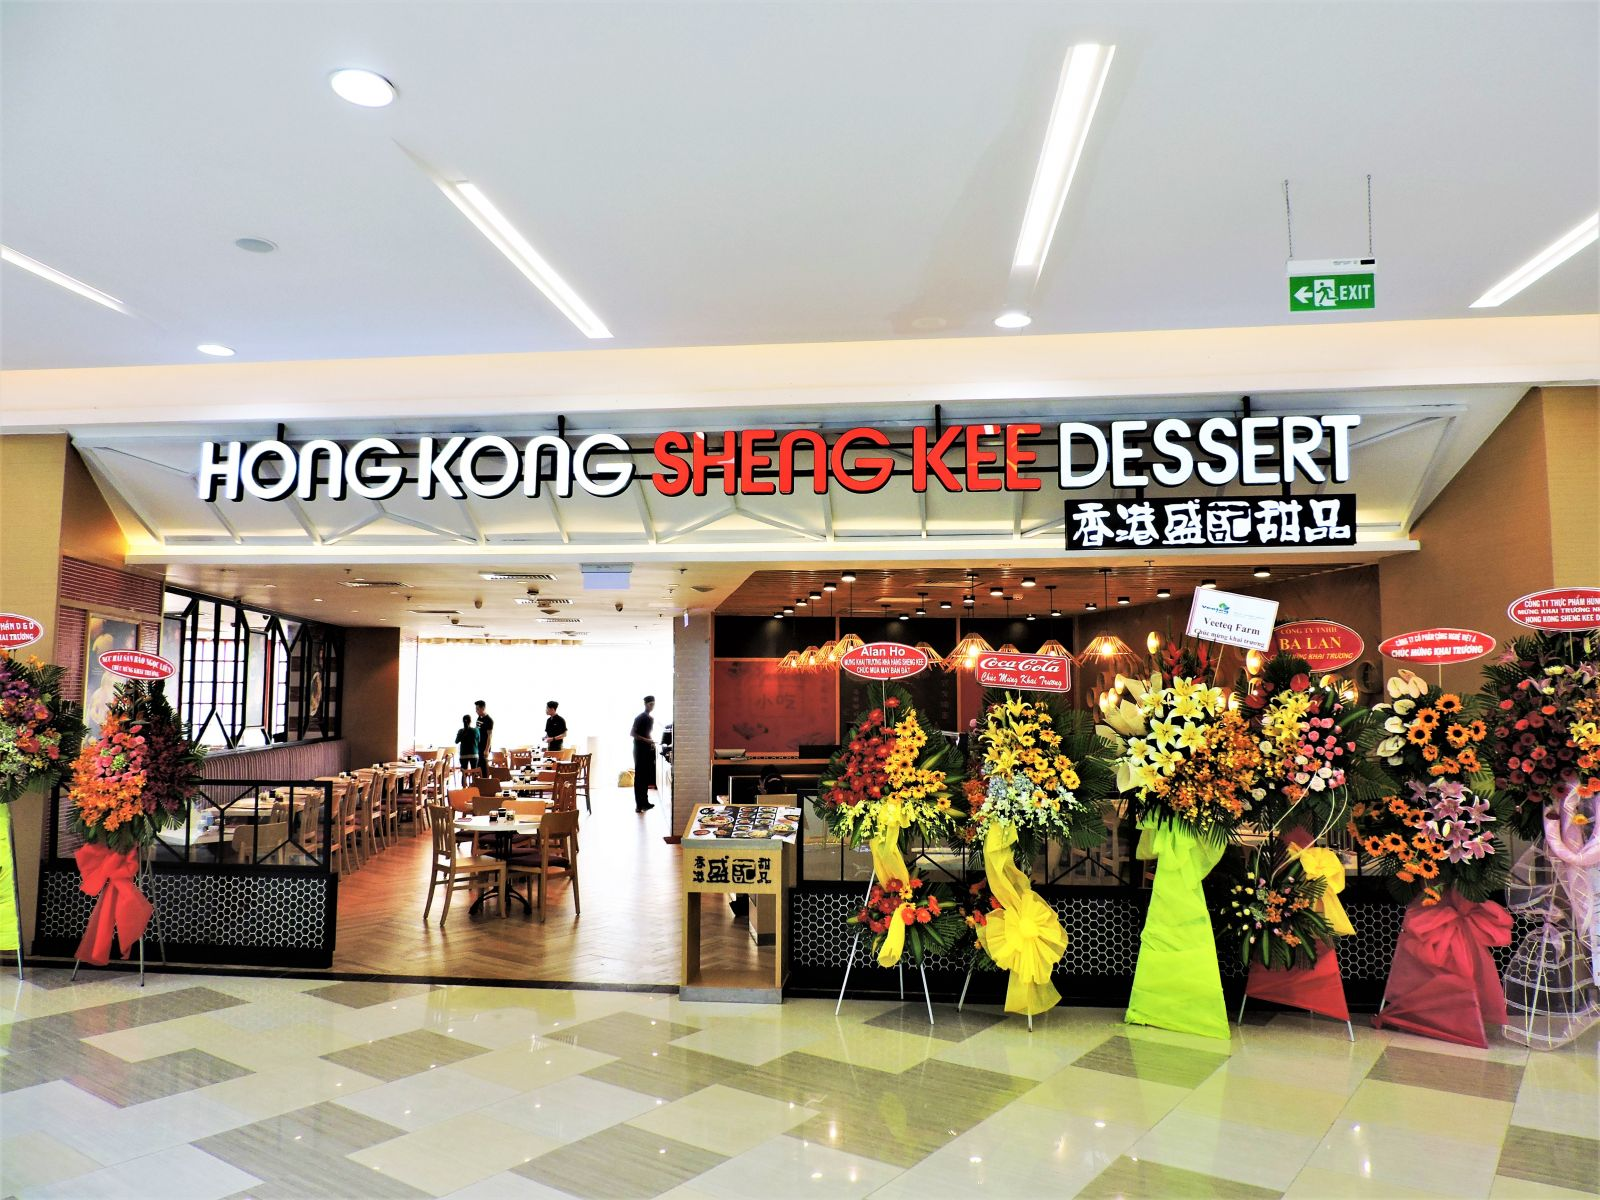 Project Hong Kong Shengkee Restaurant